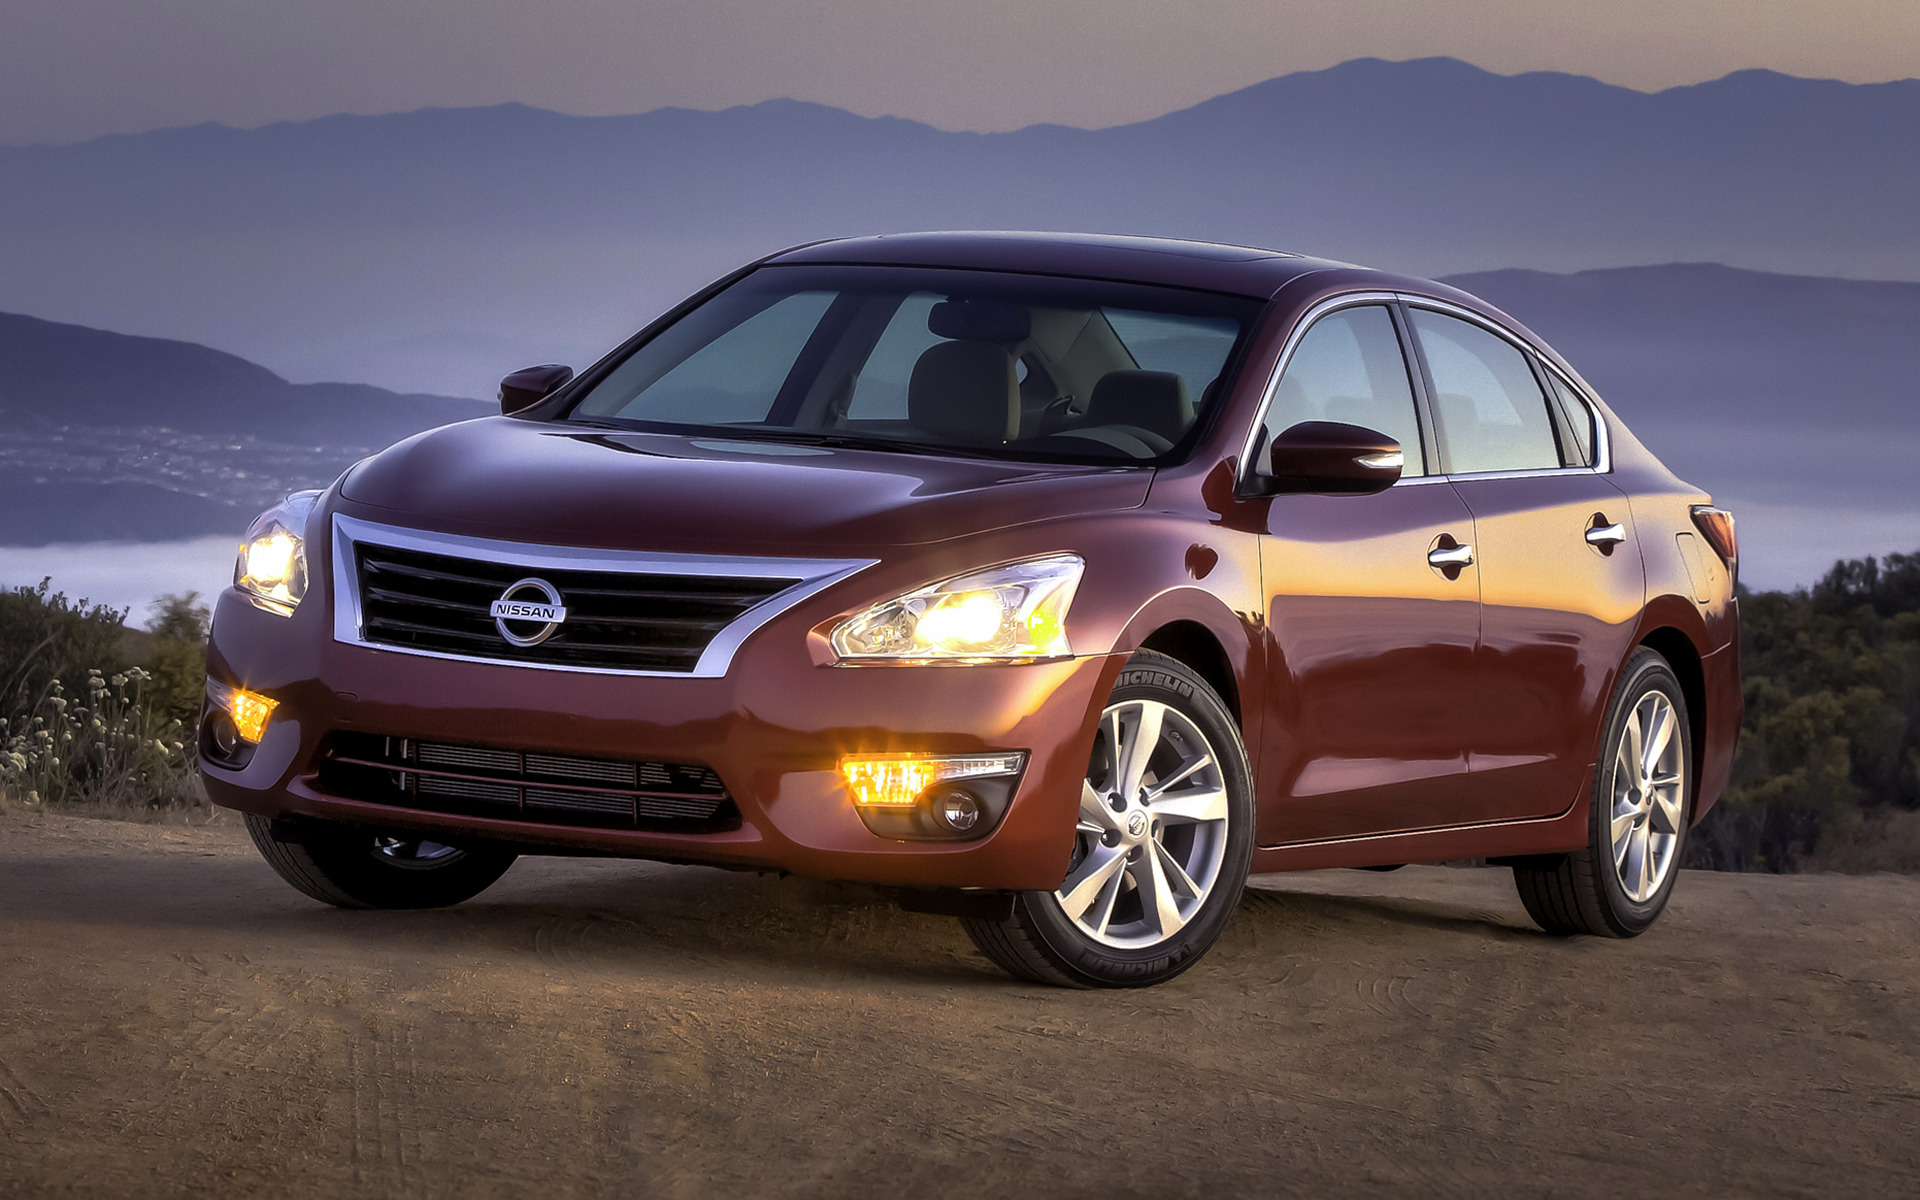 2016 Nissan Sentra Sv >> 2013 Nissan Altima SV - Wallpapers and HD Images | Car Pixel